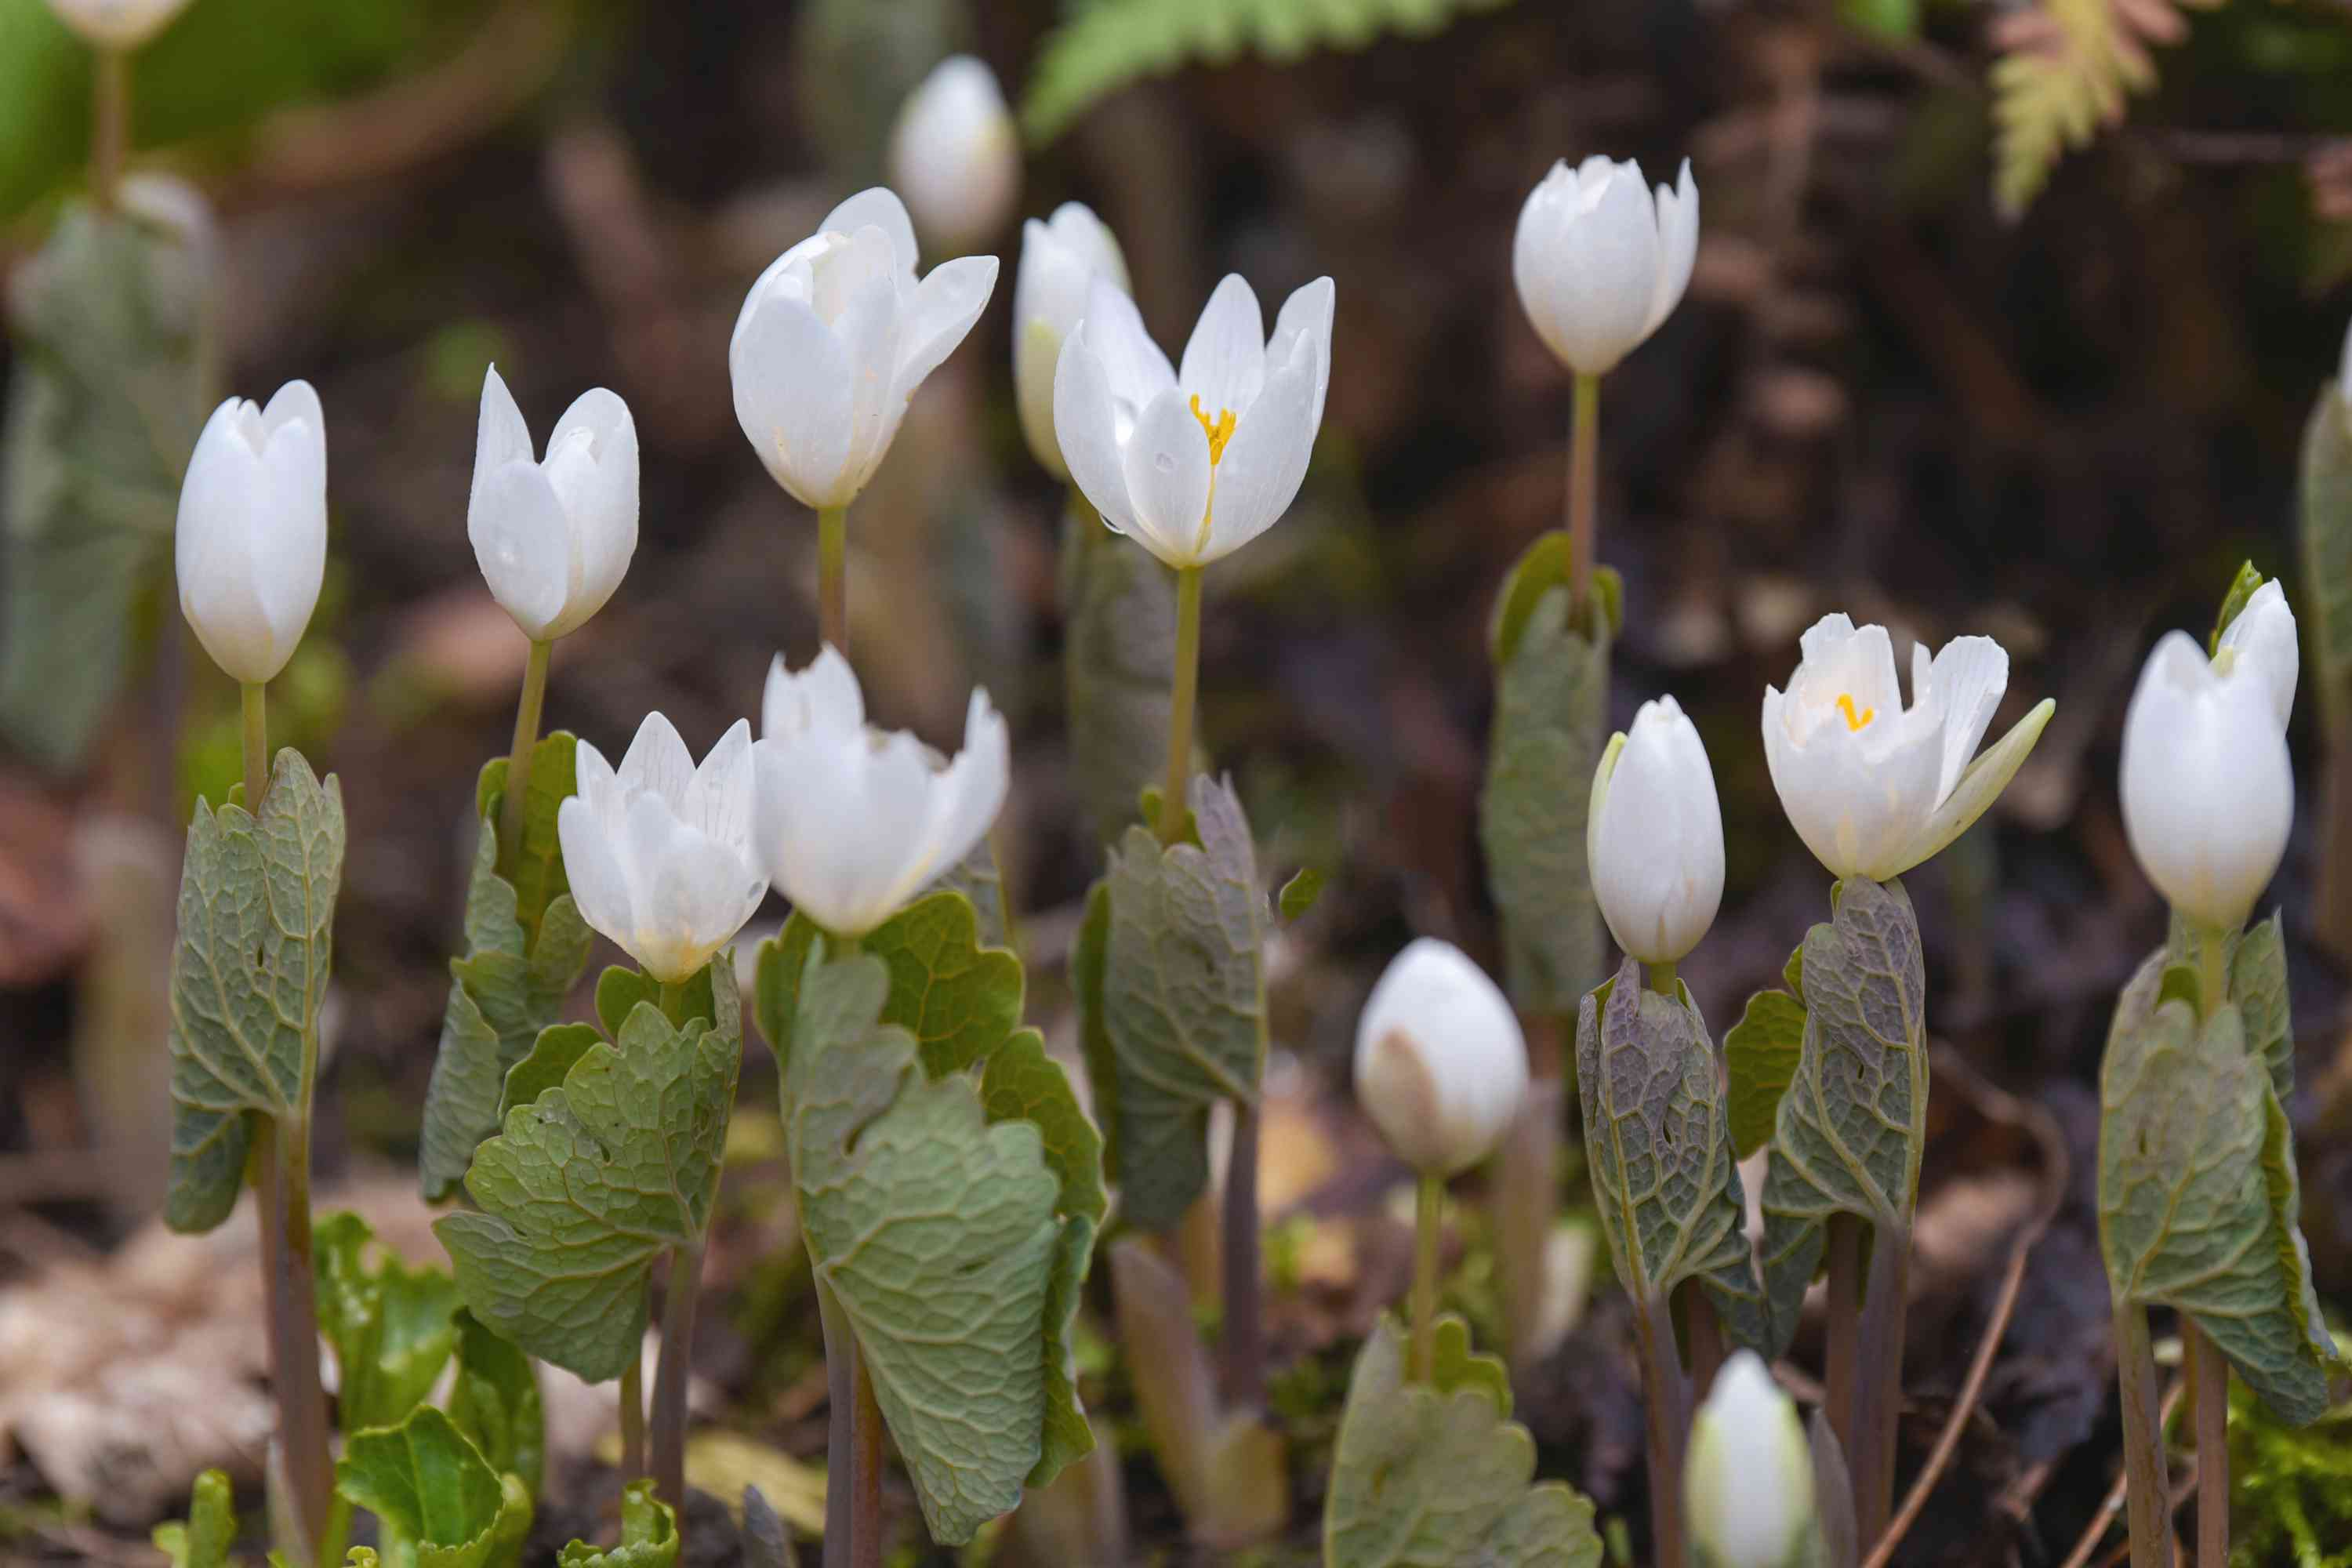 Bloodroot white flower buds and opening flowers with loved and veiny leaves on thin stems